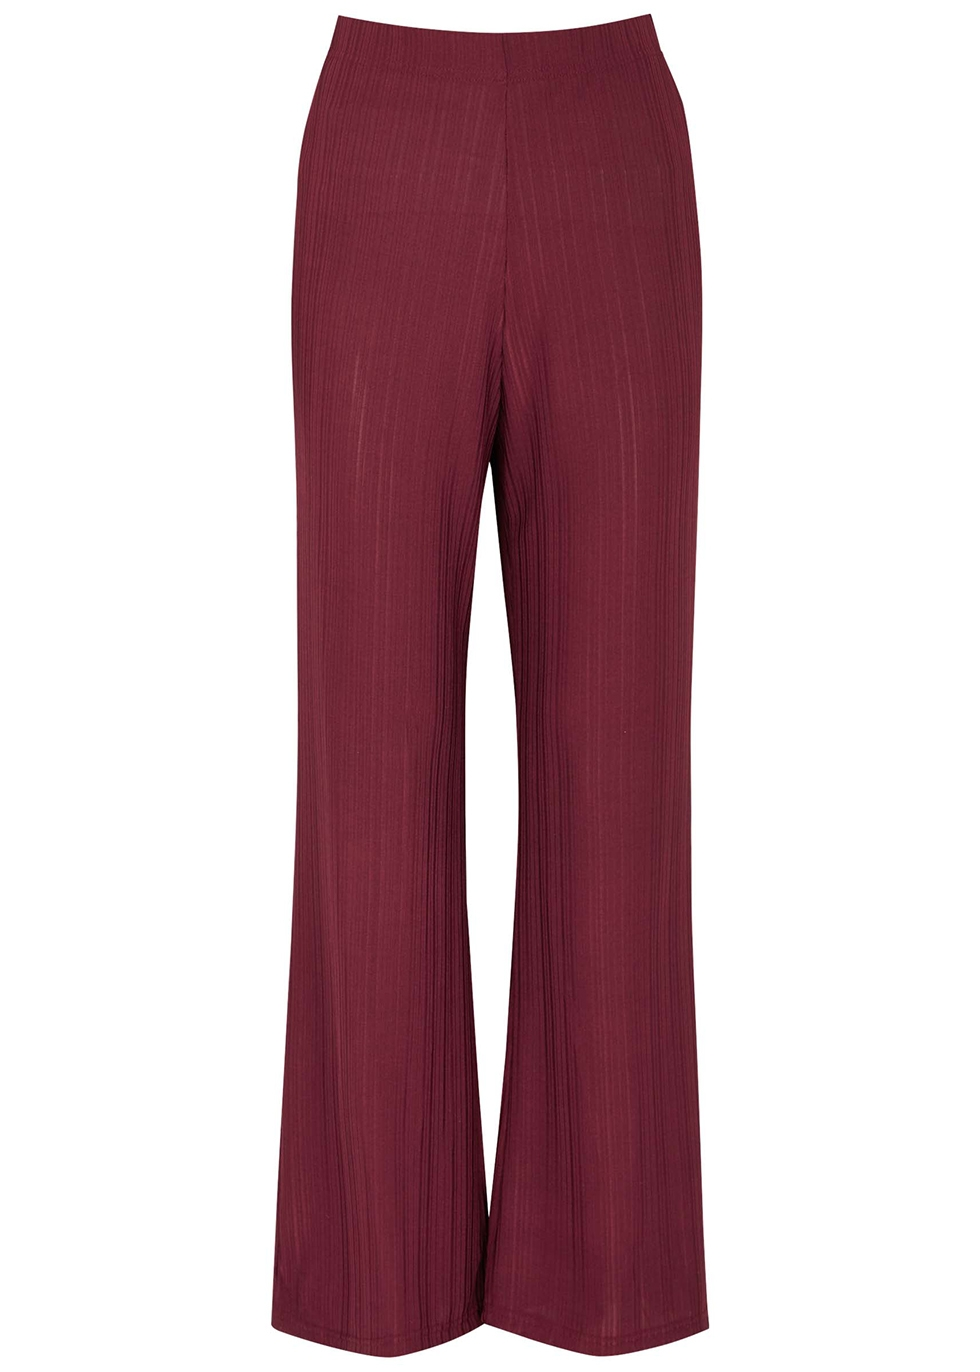 Embla burgundy ribbed stretch-jersey trousers